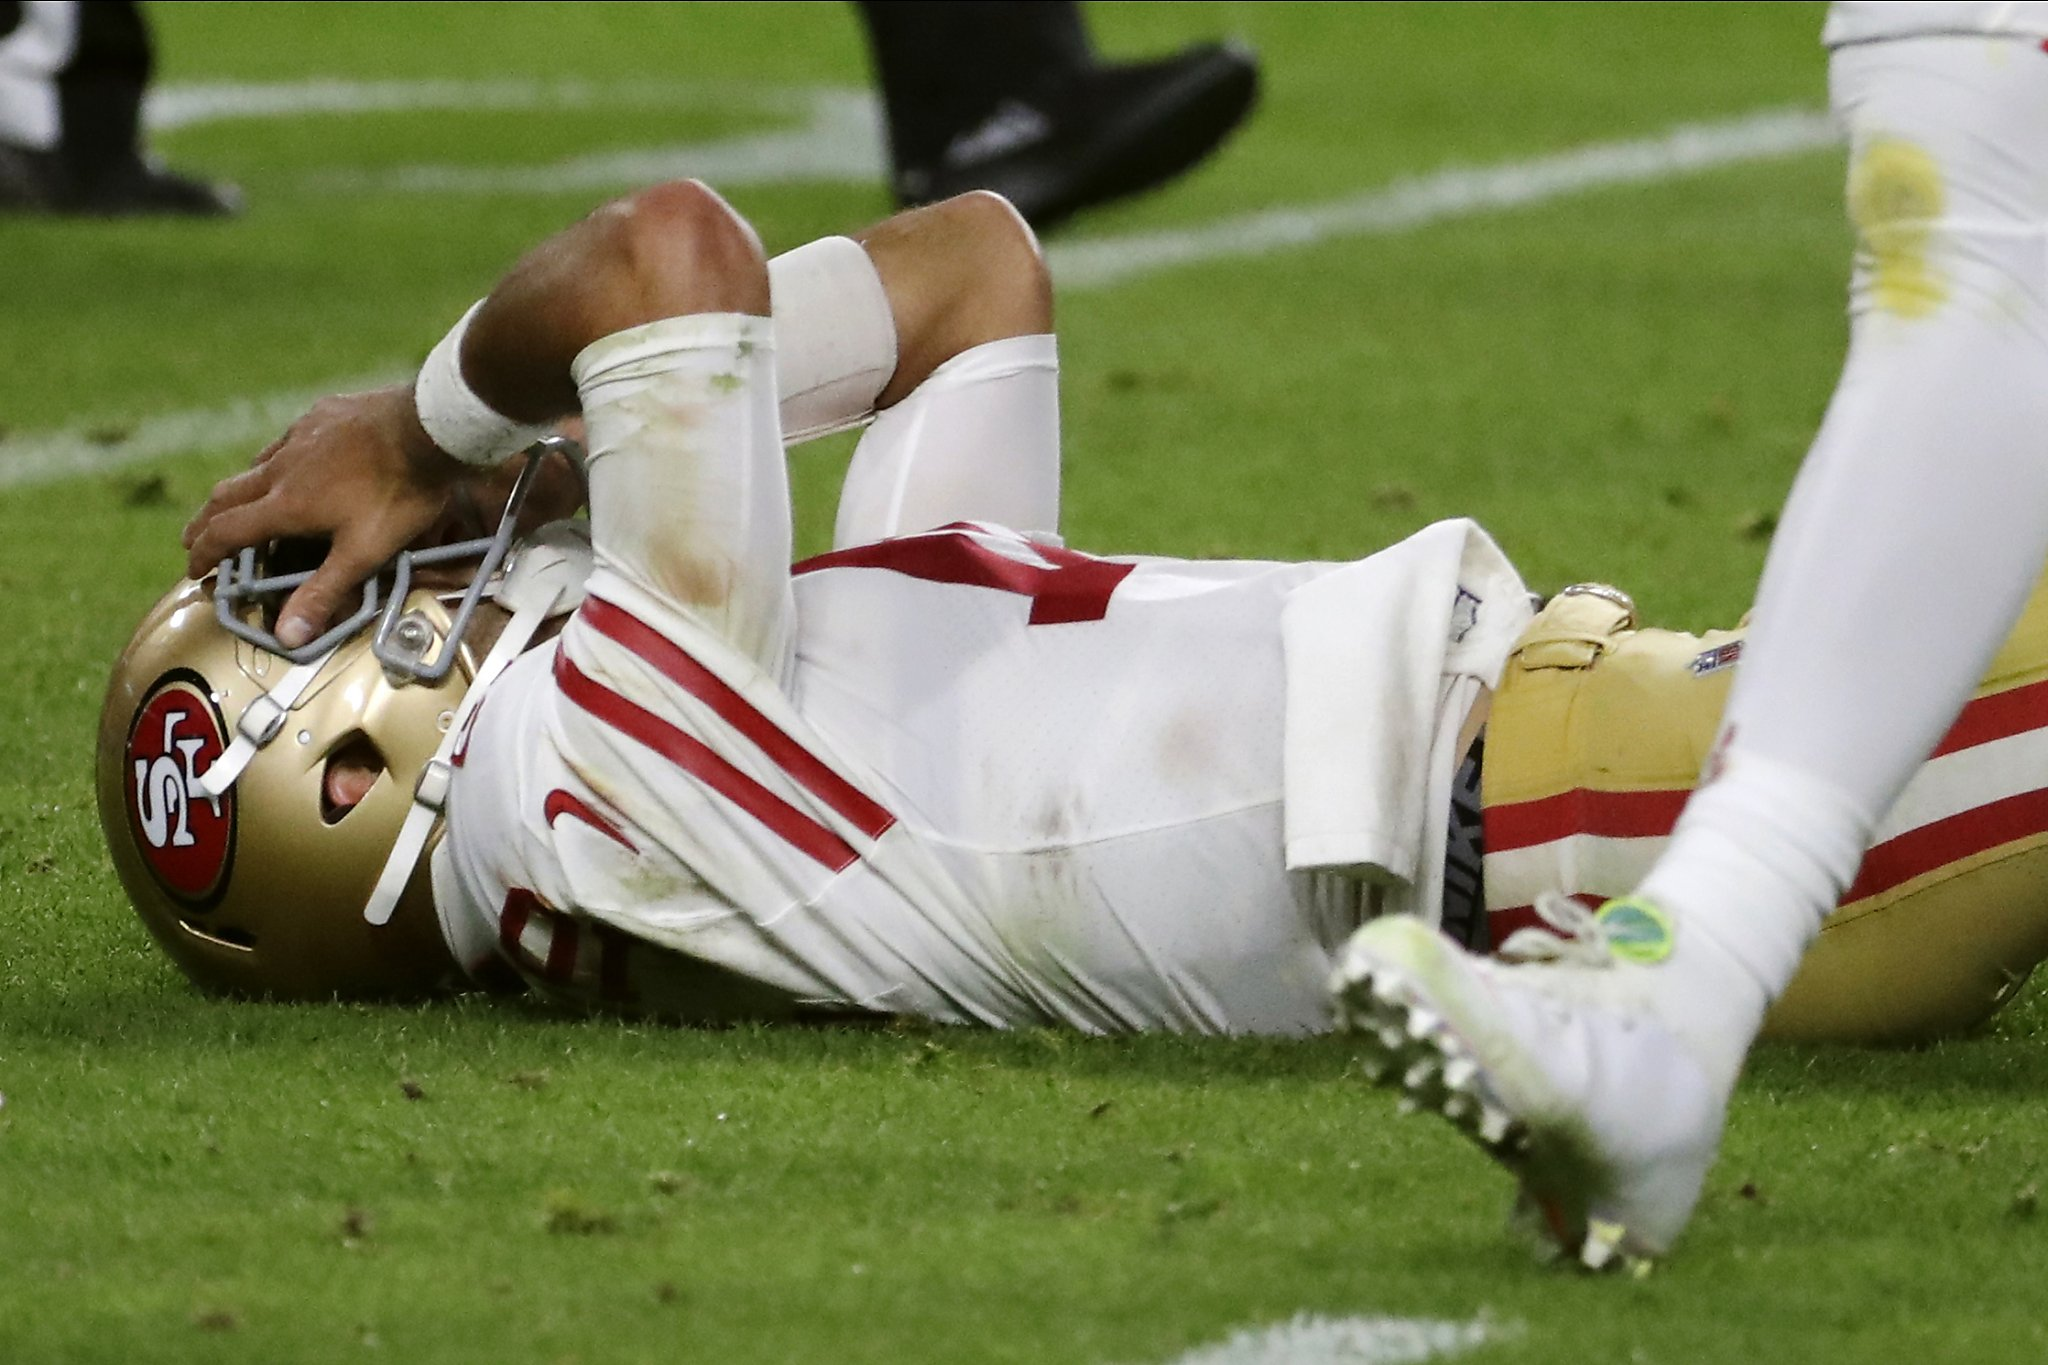 49ers' Super Bowl collapse vs. Chiefs won't fall squarely on Kyle Shanahan